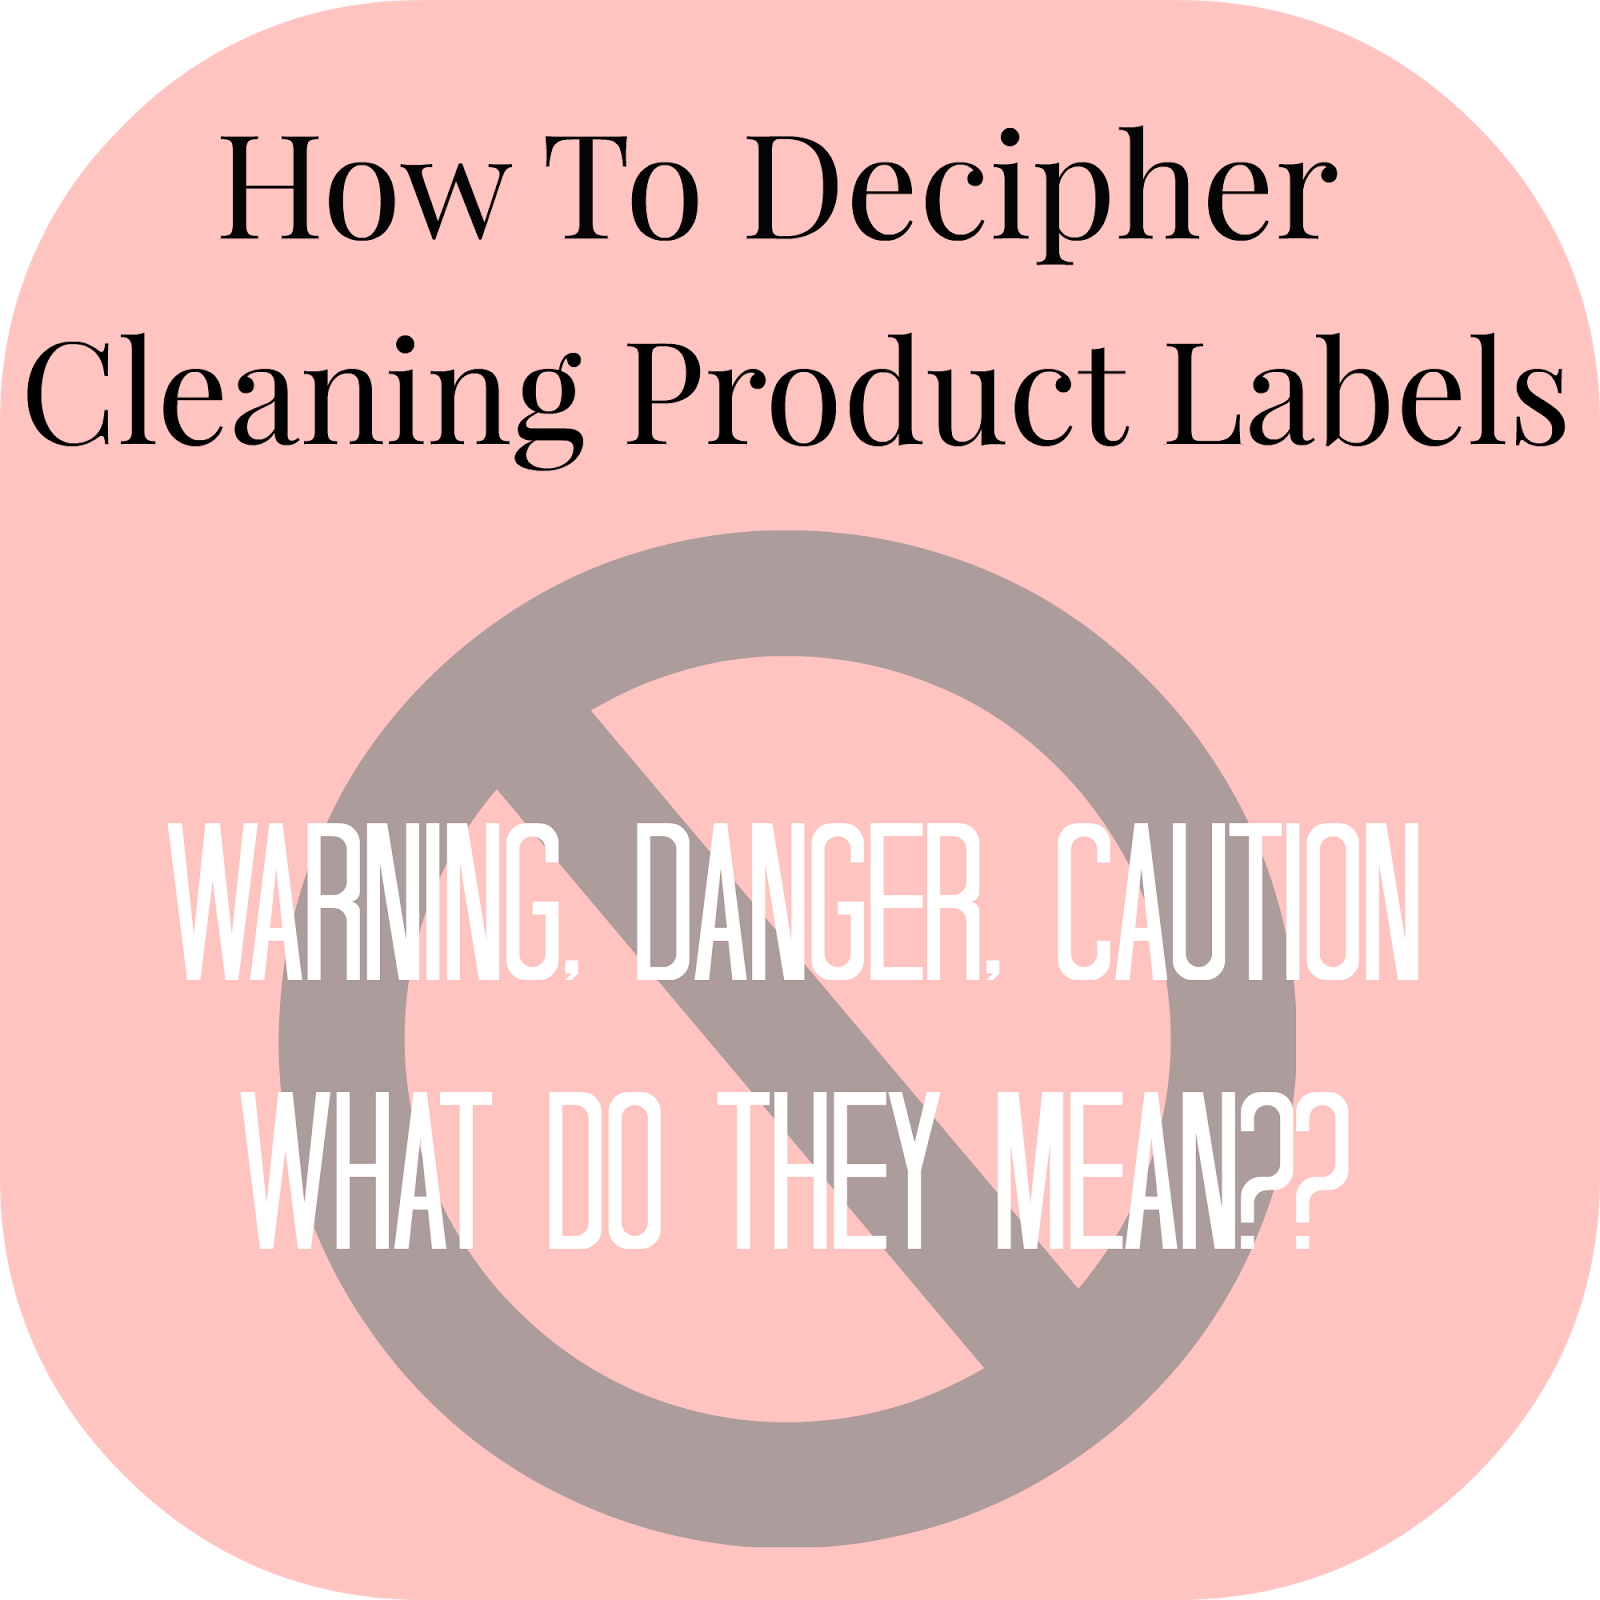 How To Decipher Cleaning Product Labels